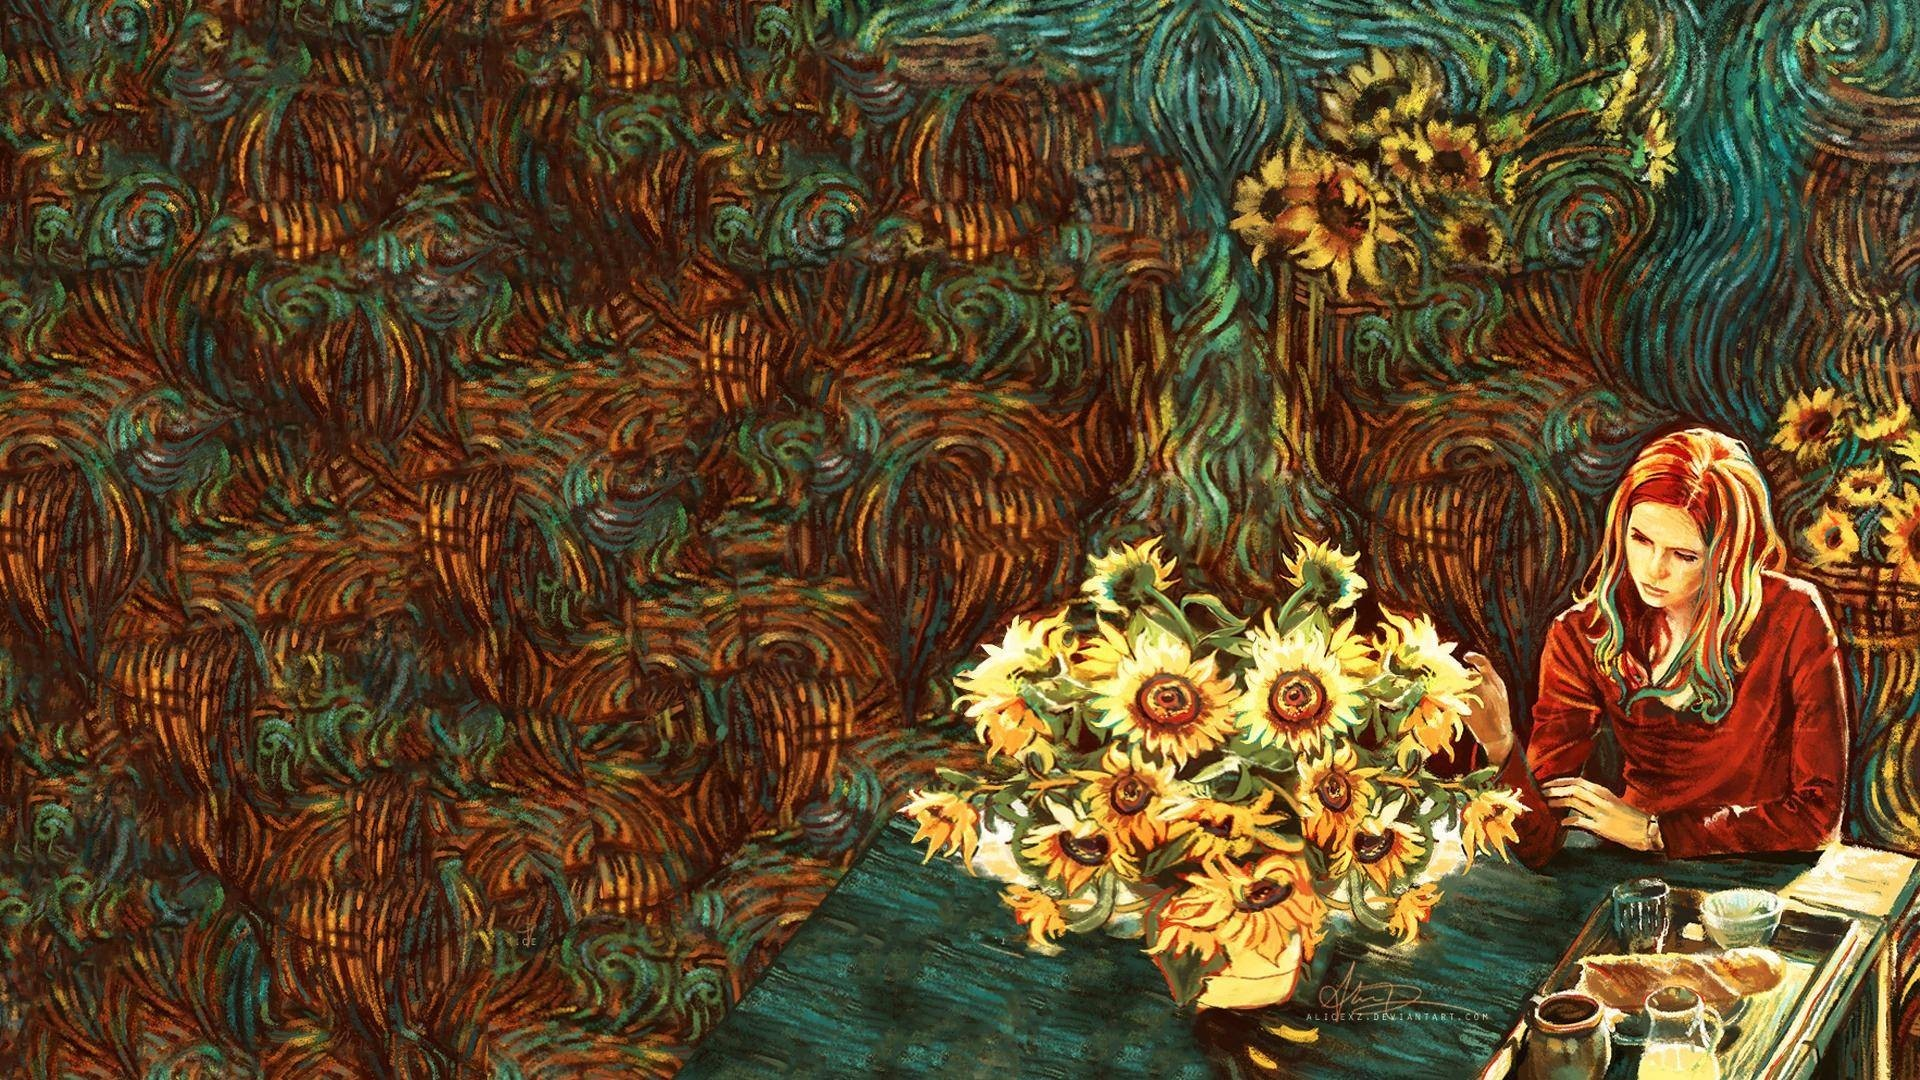 vincent van gogh karen gillan amy pond doctor who sunflowers wallpaper High  Quality Wallpapers,High Definition Wallpapers